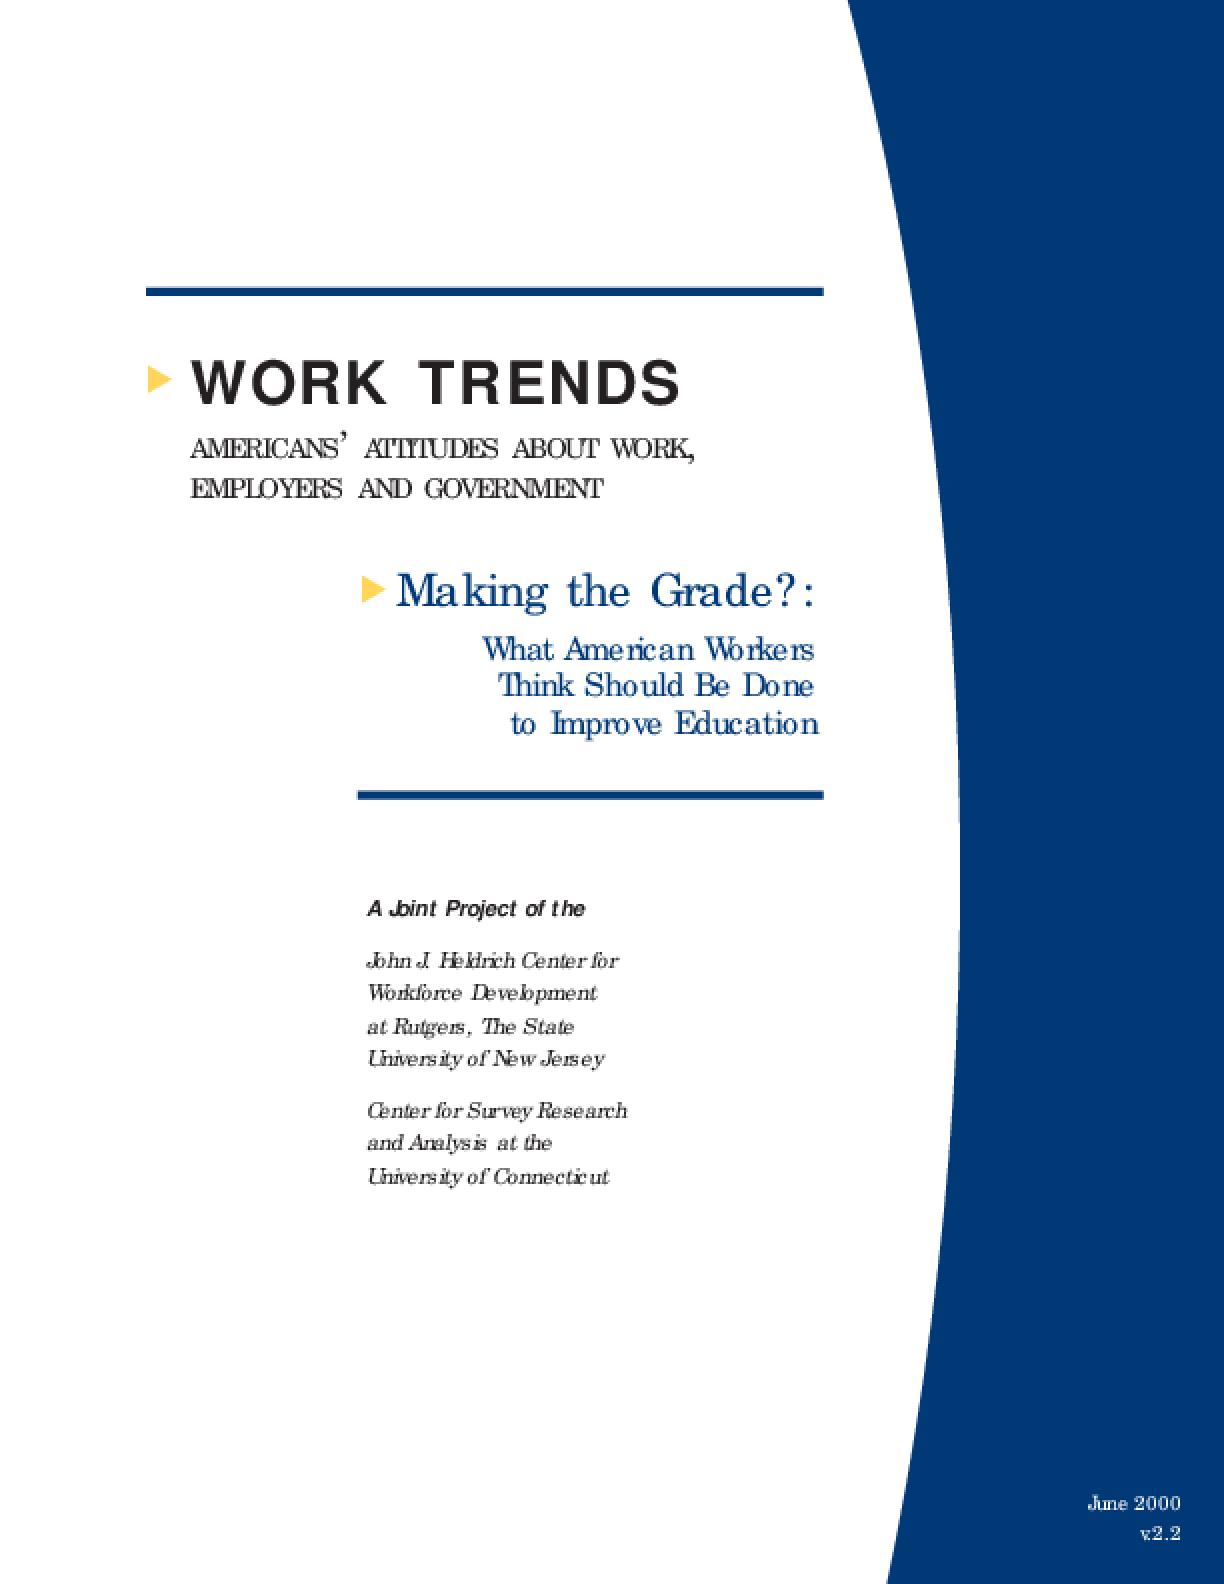 Making the Grade: What American Workers Think Should Be Done to Improve Education